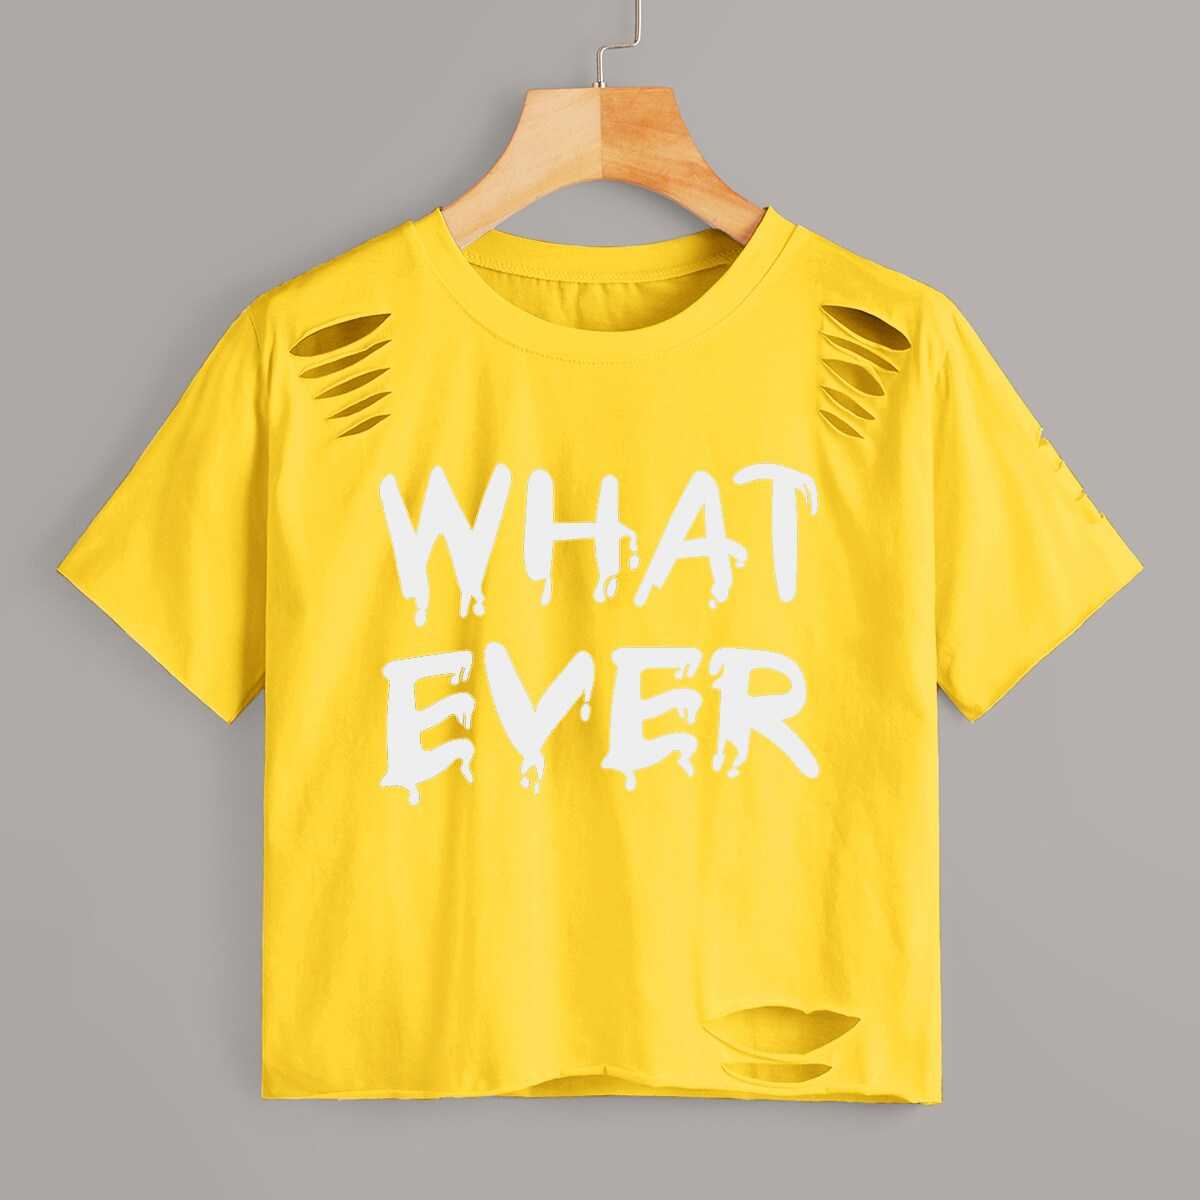 Letter Print Ripped Tee in Yellow by ROMWE on GOOFASH